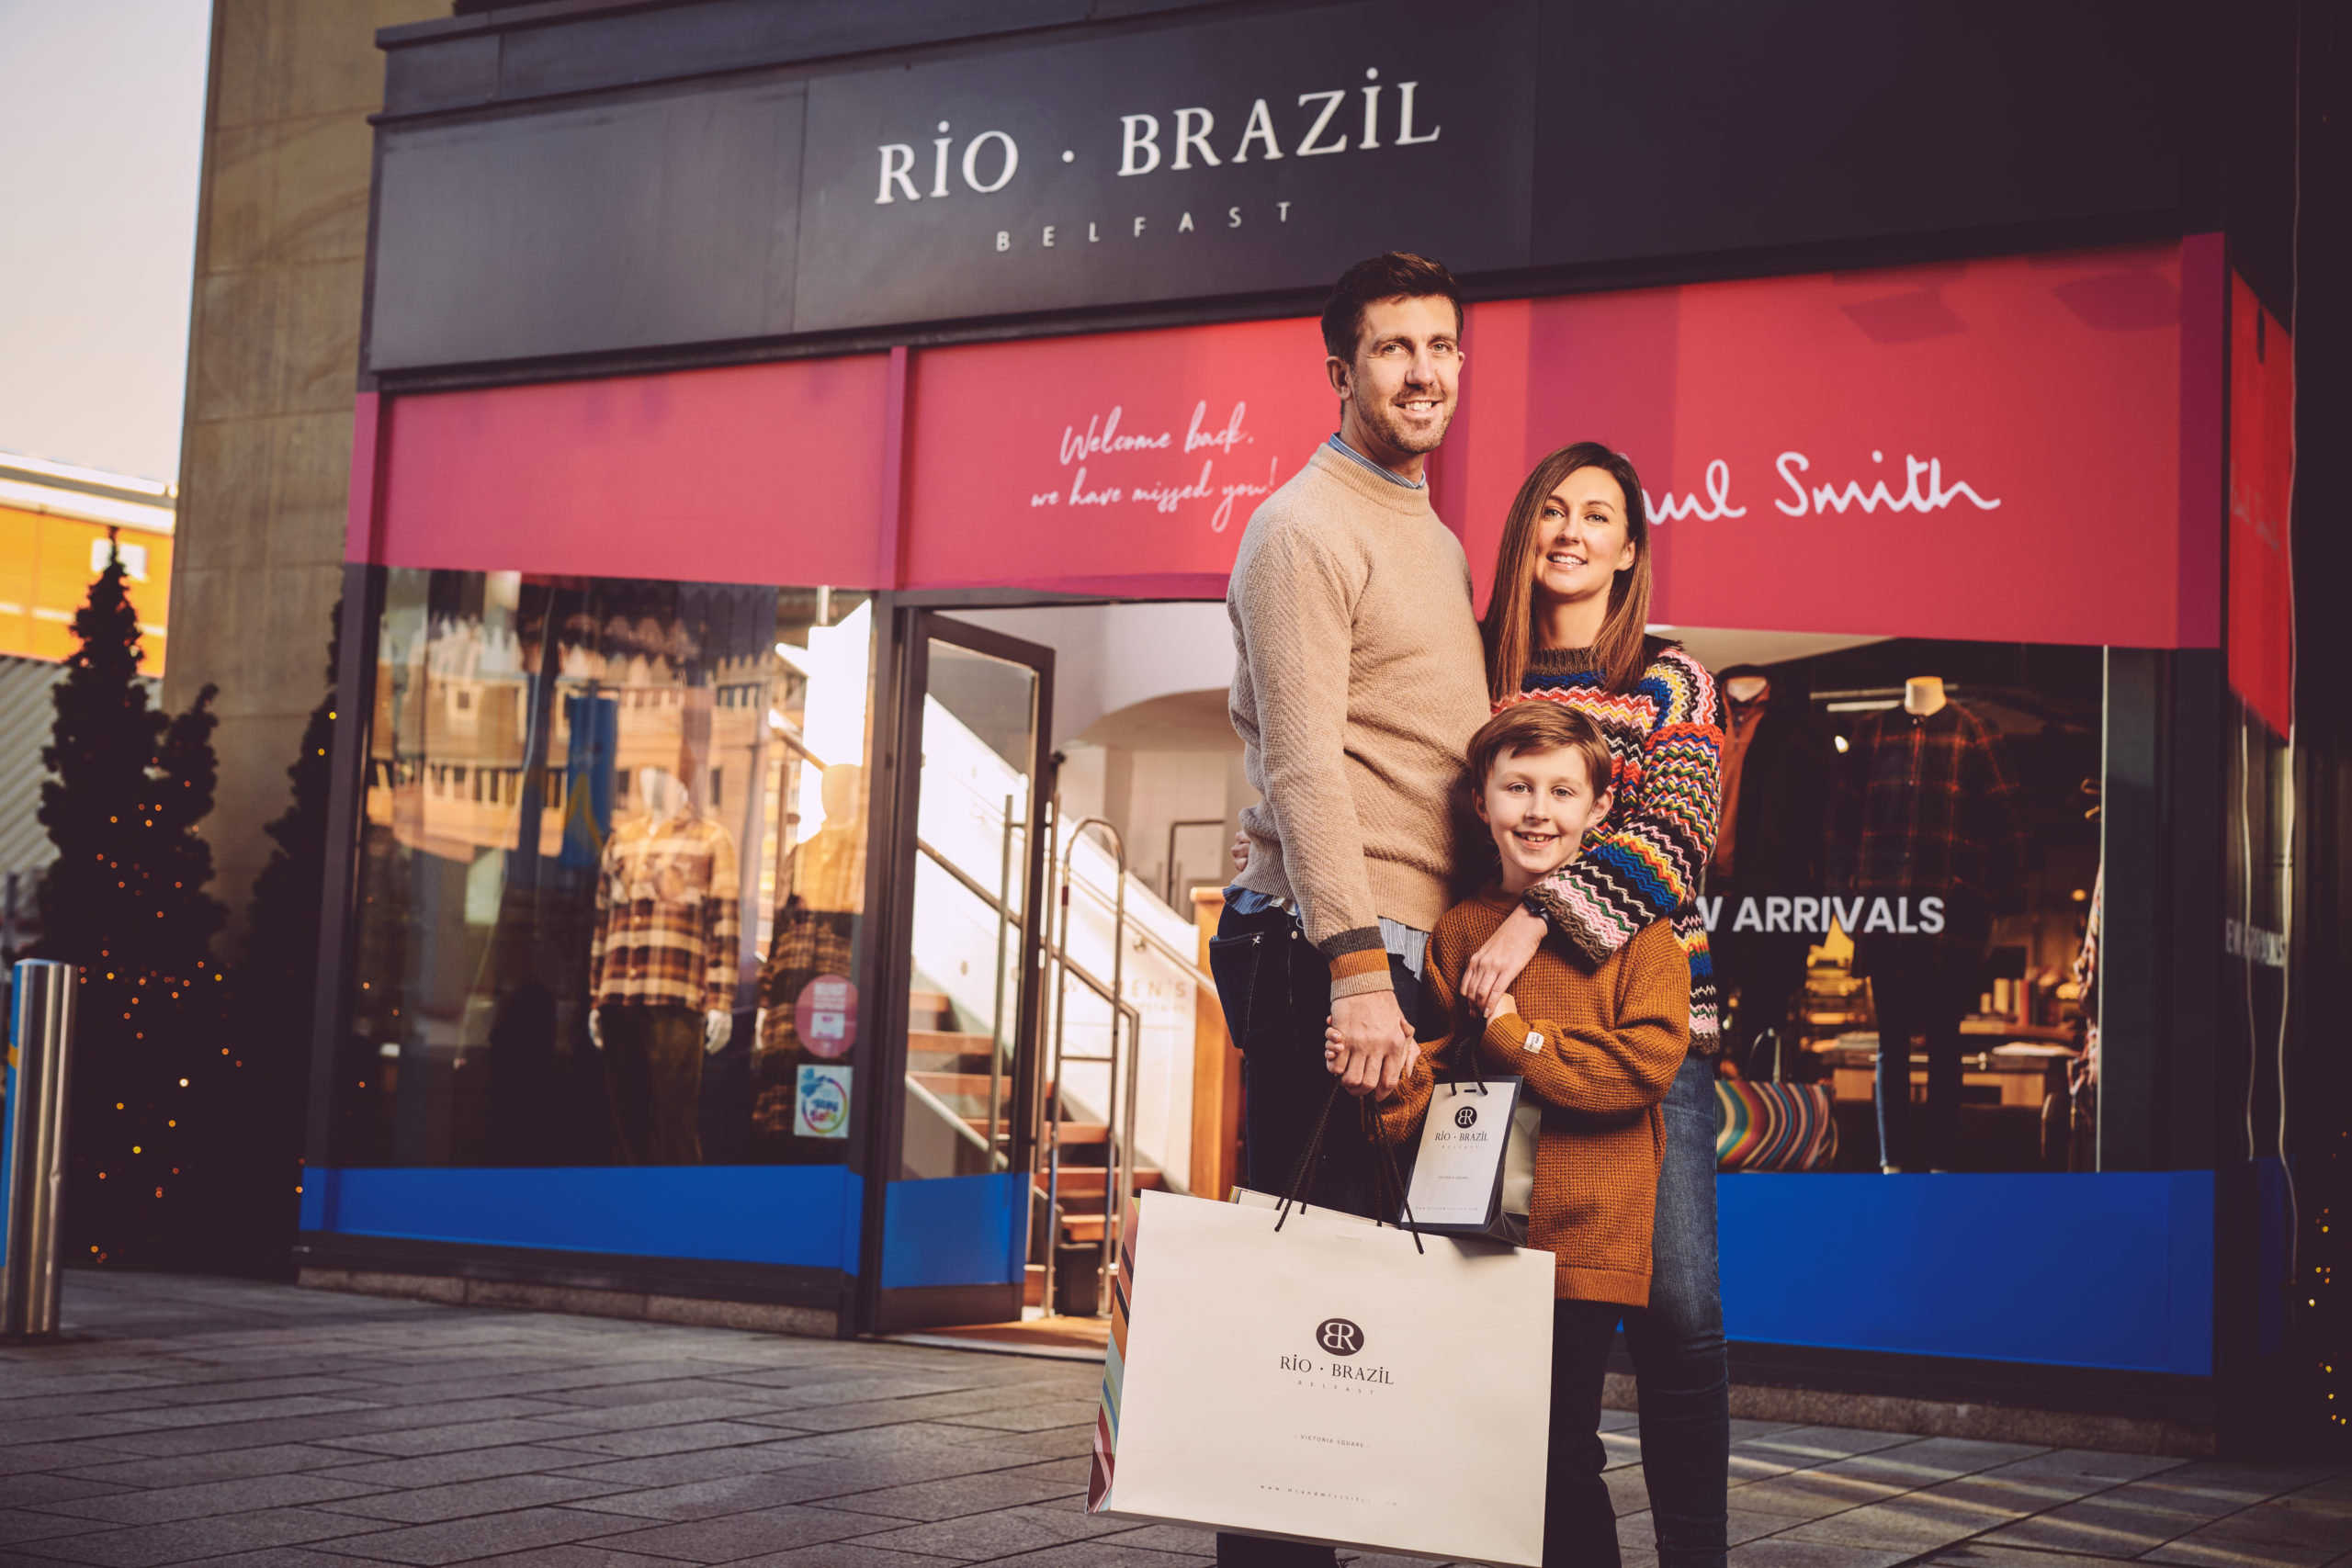 Rio Brazil. One of Belfast's longest running independent fashion boutiques relocated to Victoria Square in October 2017. Located within a large and bright two storey unit opposite the Kitchen Bar and beside Ground coffee shop. Rio and Brazil provide a personal service delivered by experienced and knowledgeable staff. There is an individual collection of both men's and women's clothing brands which are not represented else where within Victoria Square. Some of these unique brands include; Paul Smith, Jacob Cohen, Scotch and Soda, Napapijri, R M Williams, Grenson, Jeffery West Mainline, Woolrich, Rossignol, Colmar, Parajumpers, Kent and Curwen, Eton, High, 2nd Day, Mackage and Pairs in Paris.